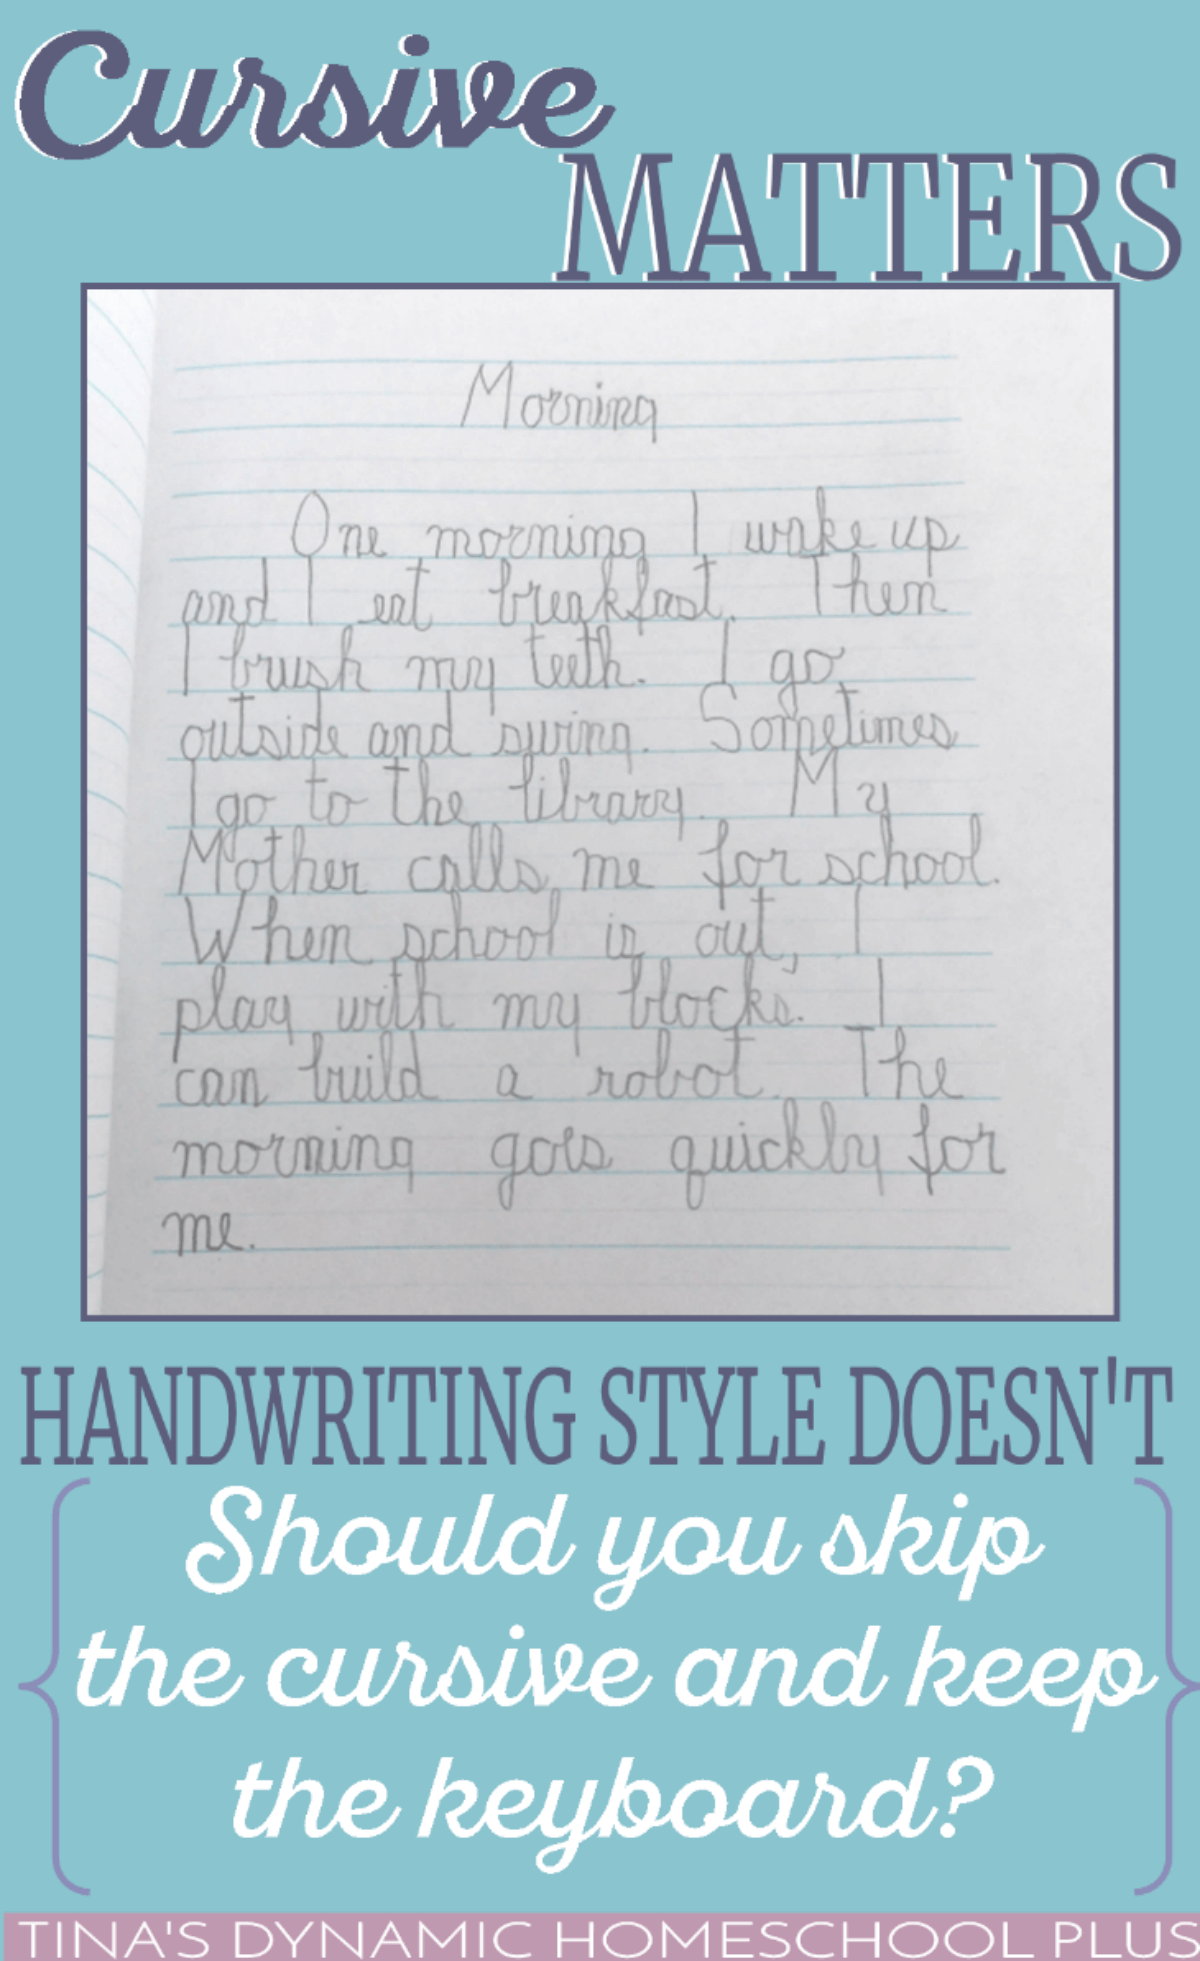 worksheet Cursive T cursive matters handwriting style doesnt free resources